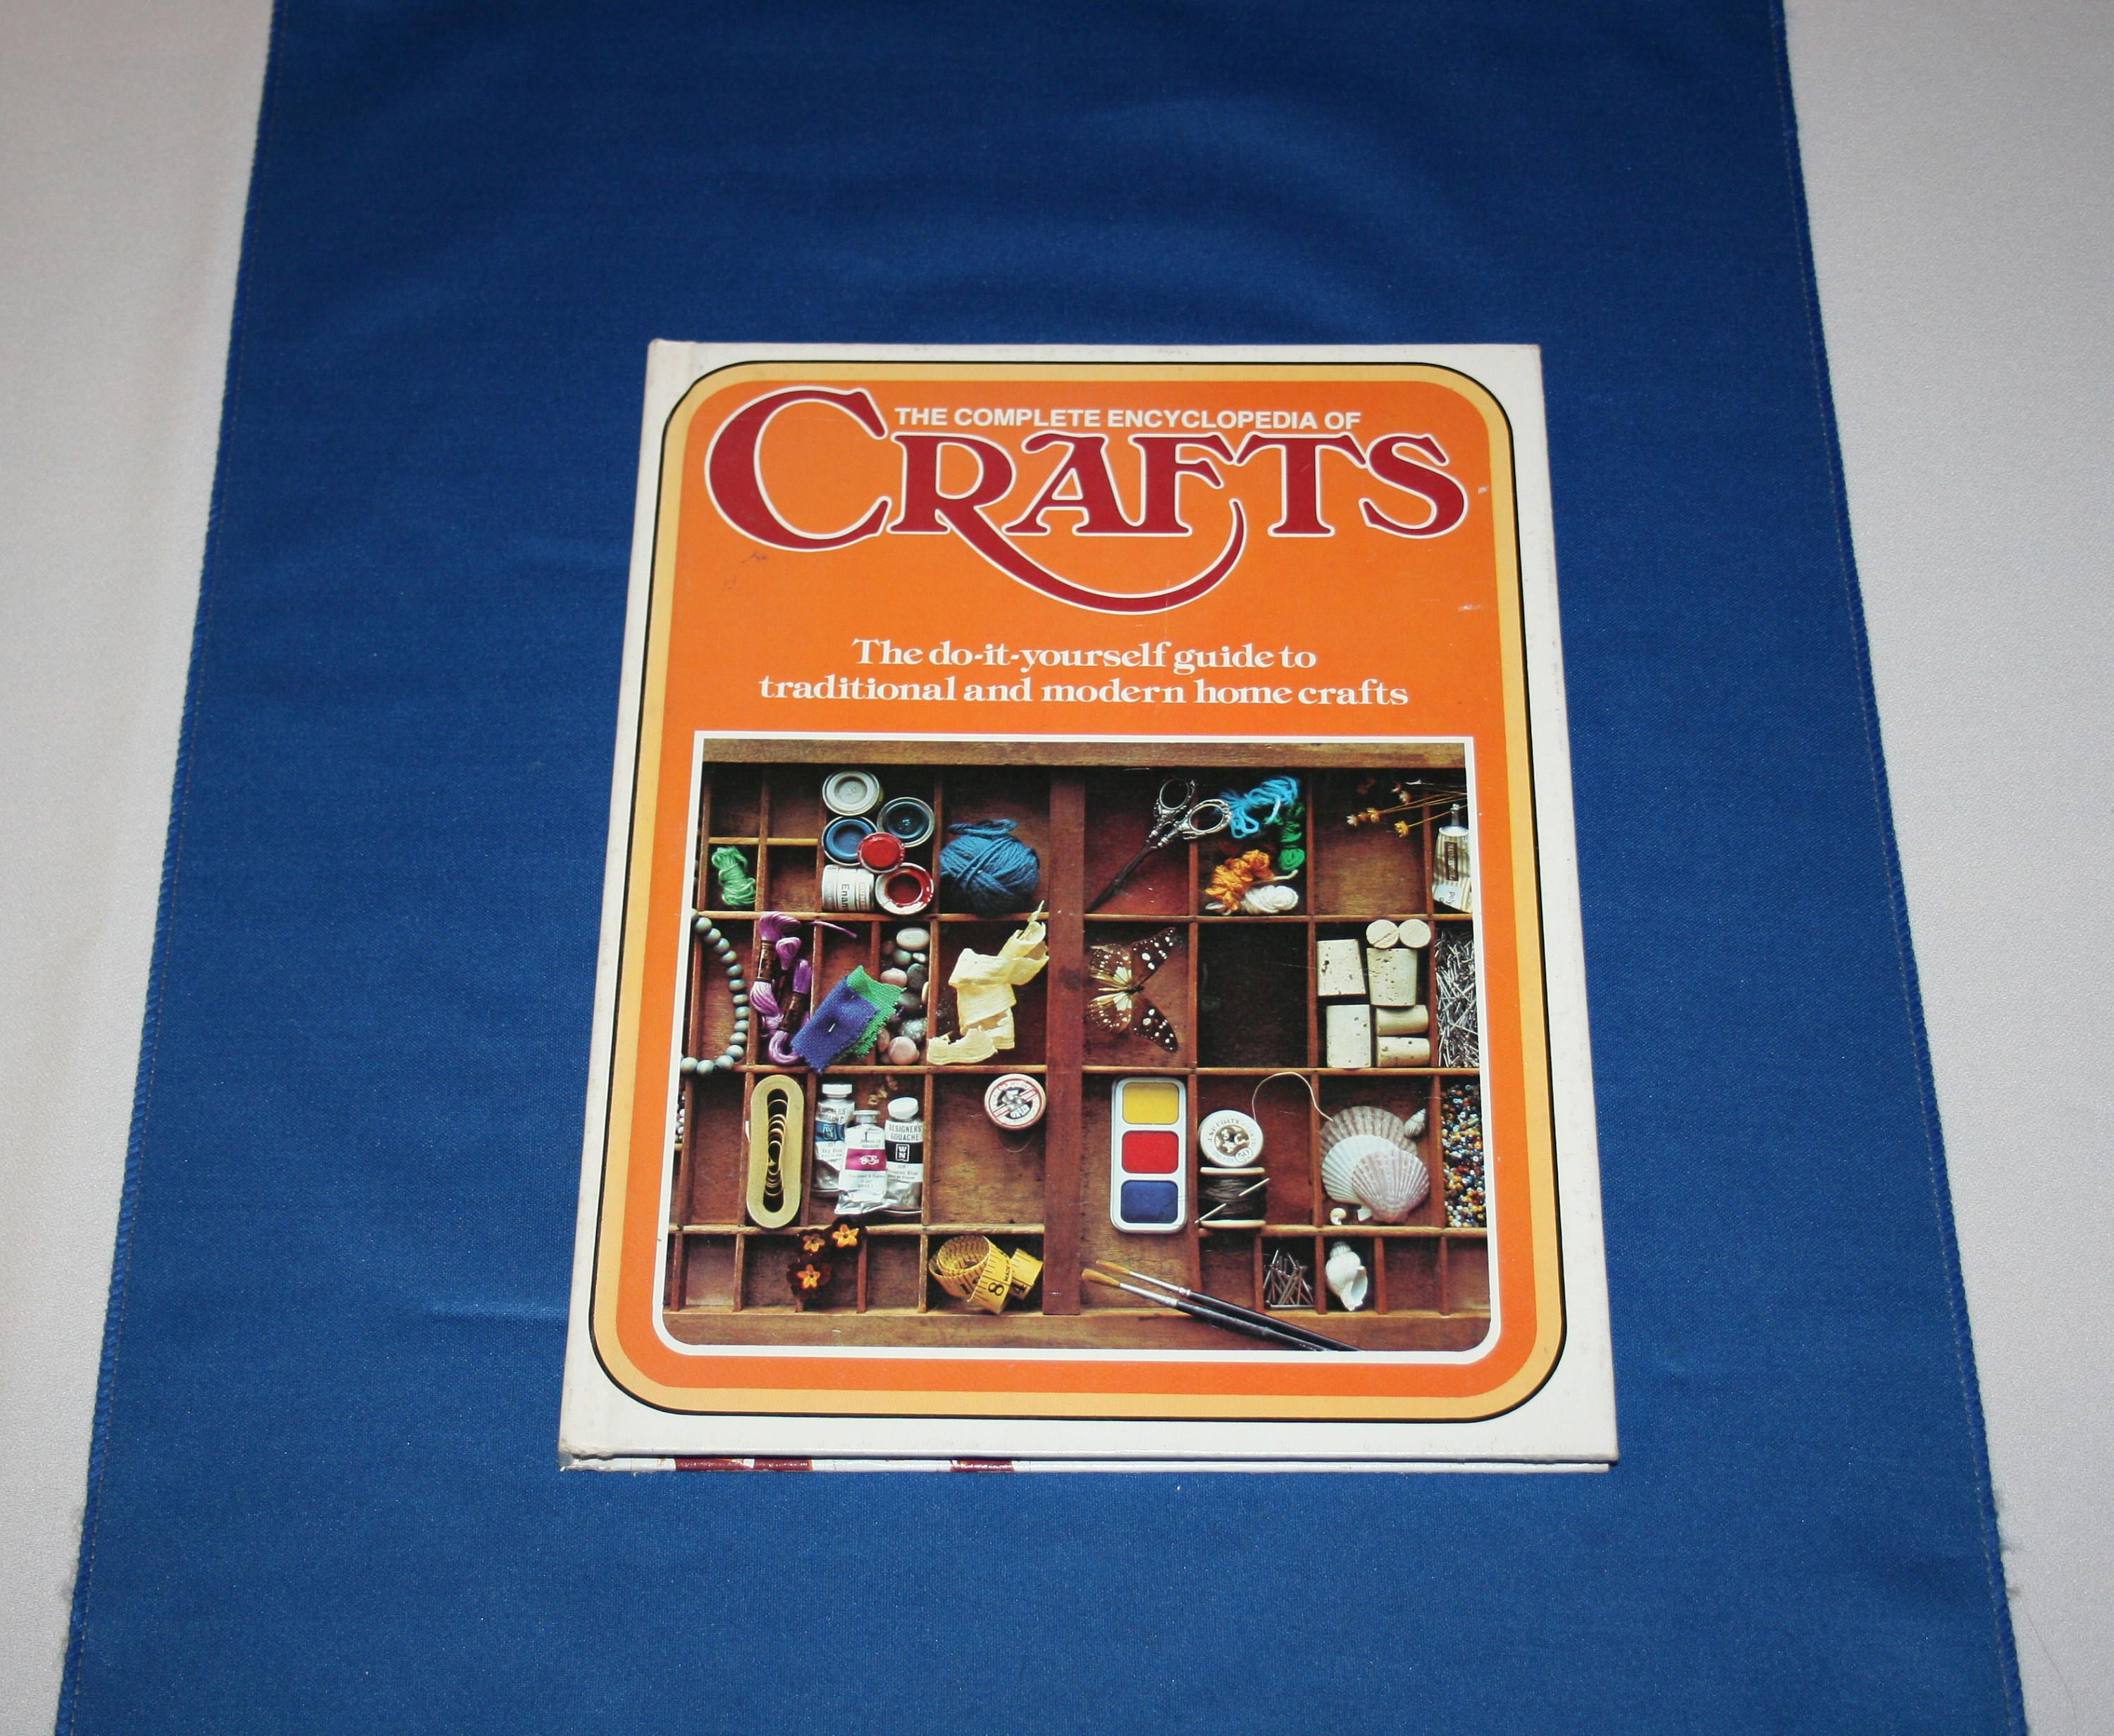 Complete encyclopedia of crafts volume 1 hardcover book 1975 do it complete encyclopedia of crafts volume 1 hardcover book 1975 do it yourself guide home solutioingenieria Image collections